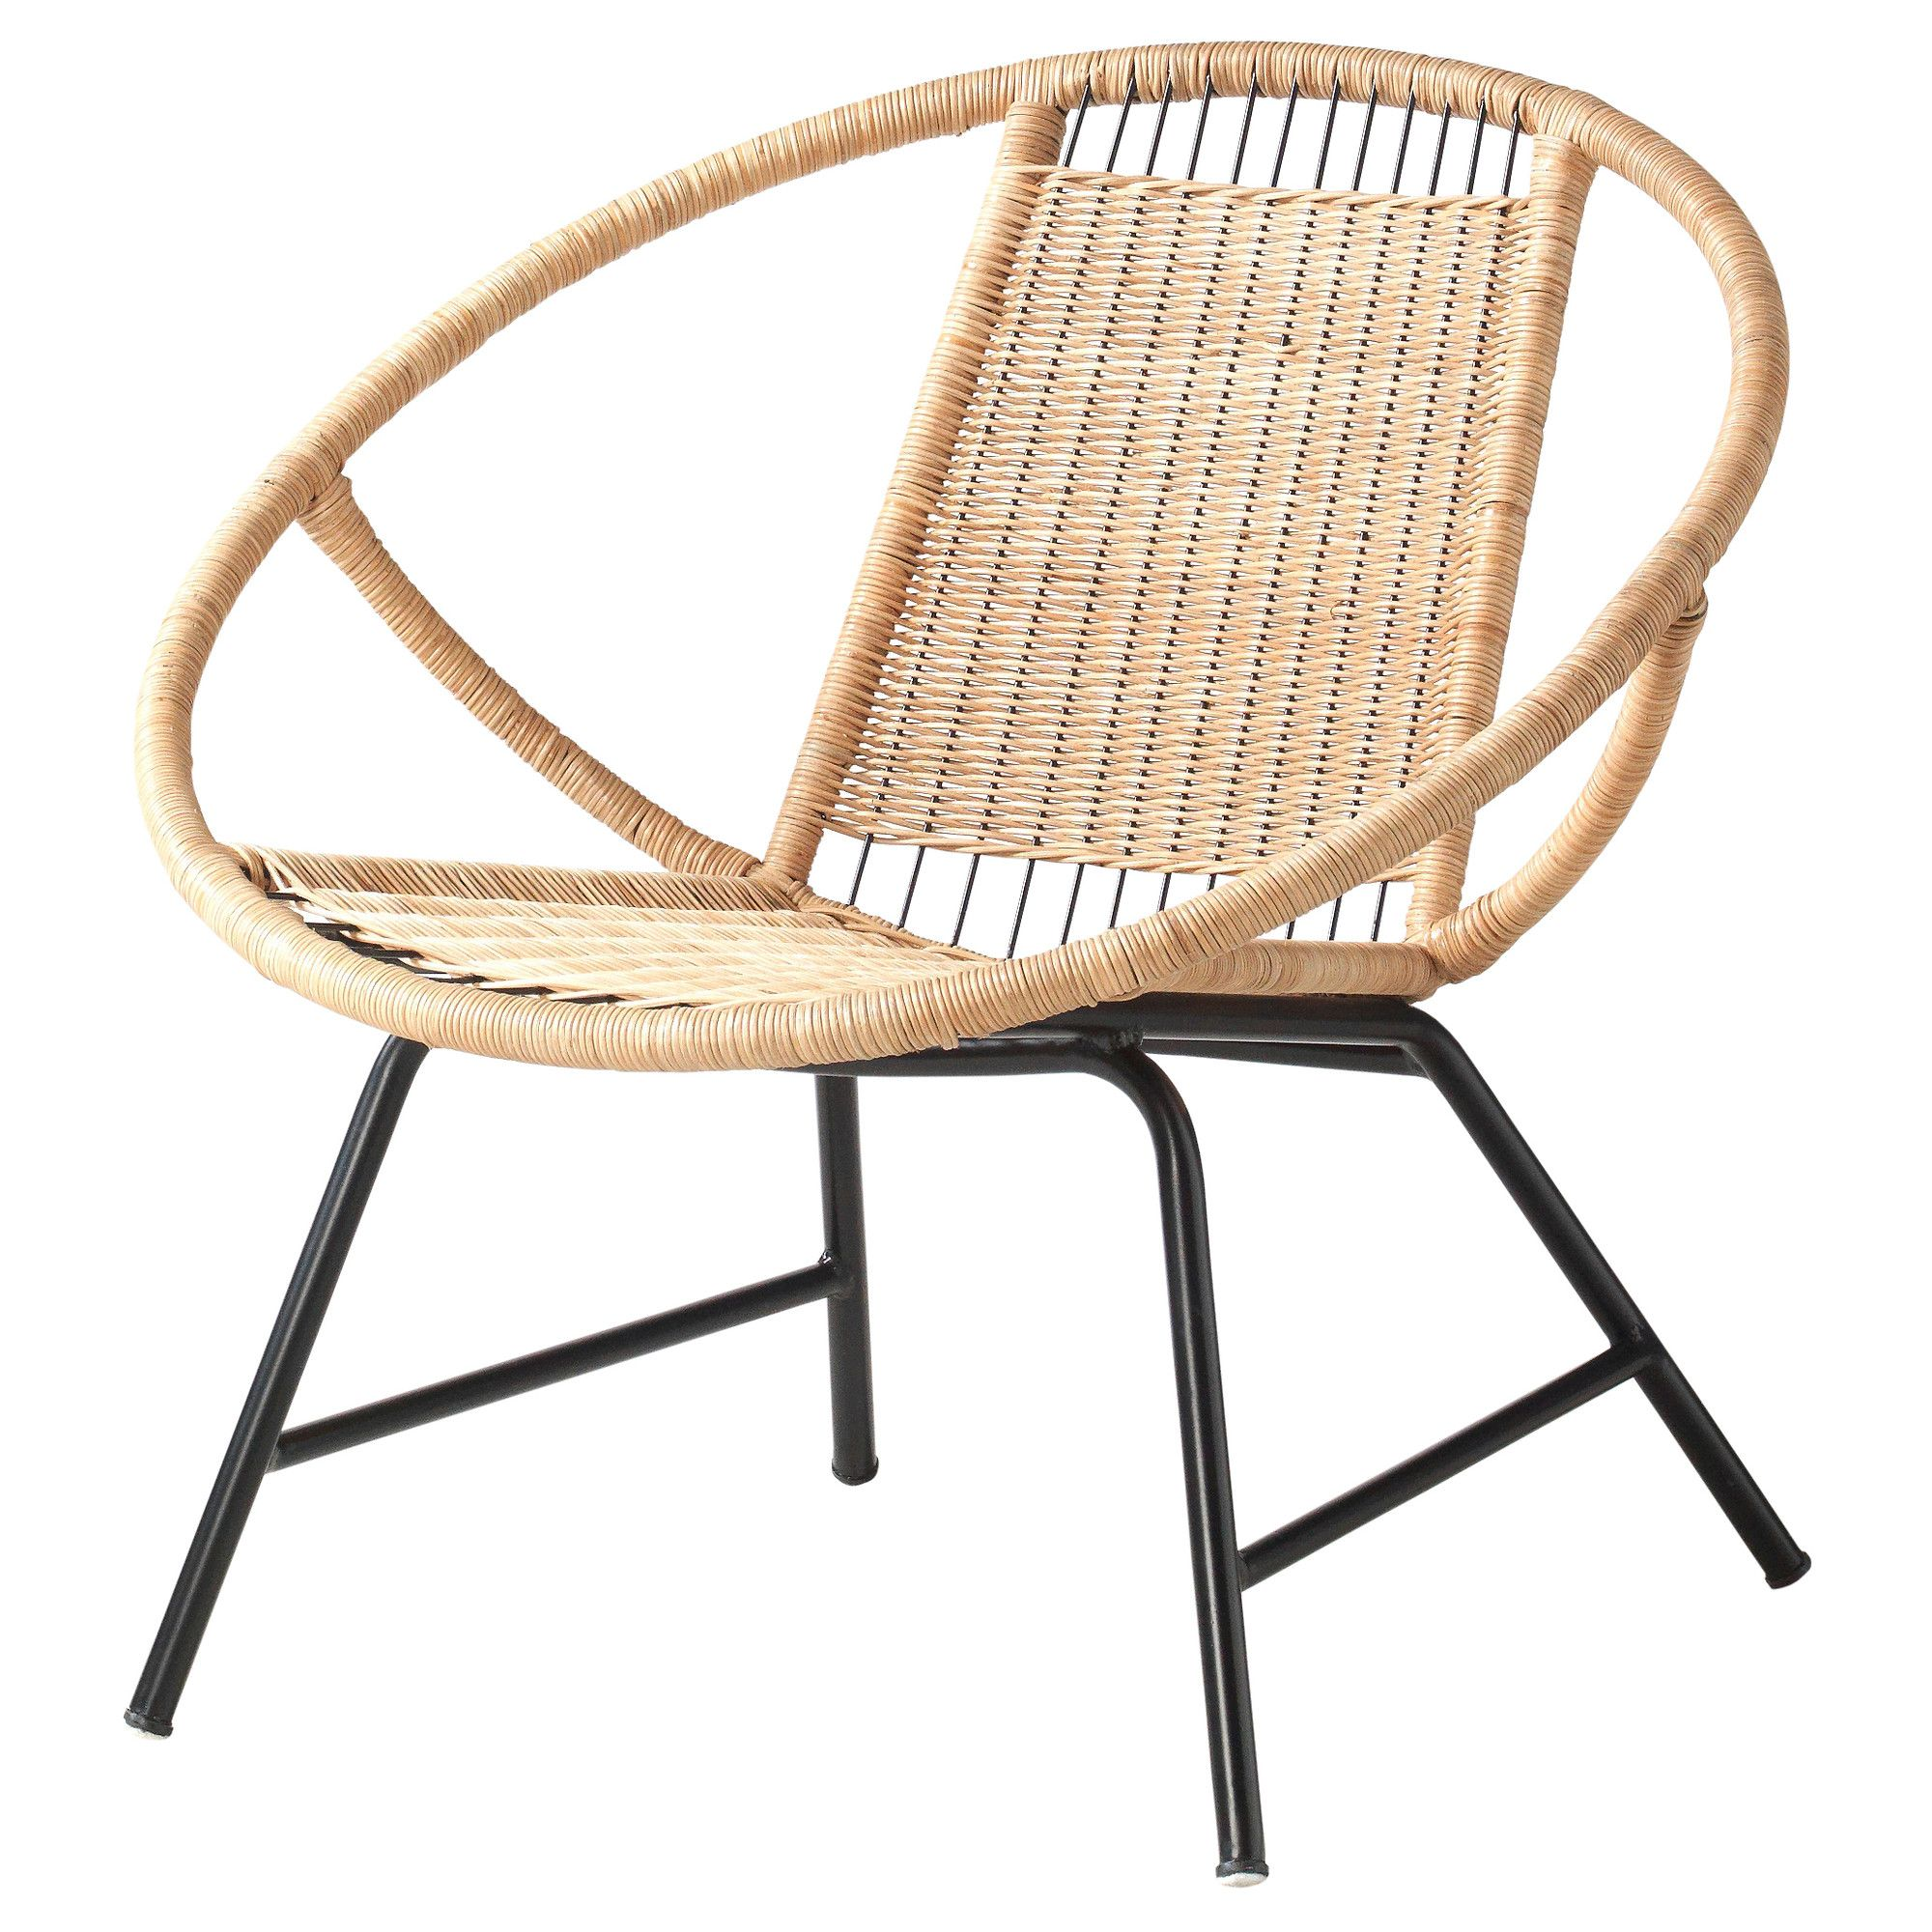 rattan chair ikea helicopter swing gagnet fauteuil chairs pinterest